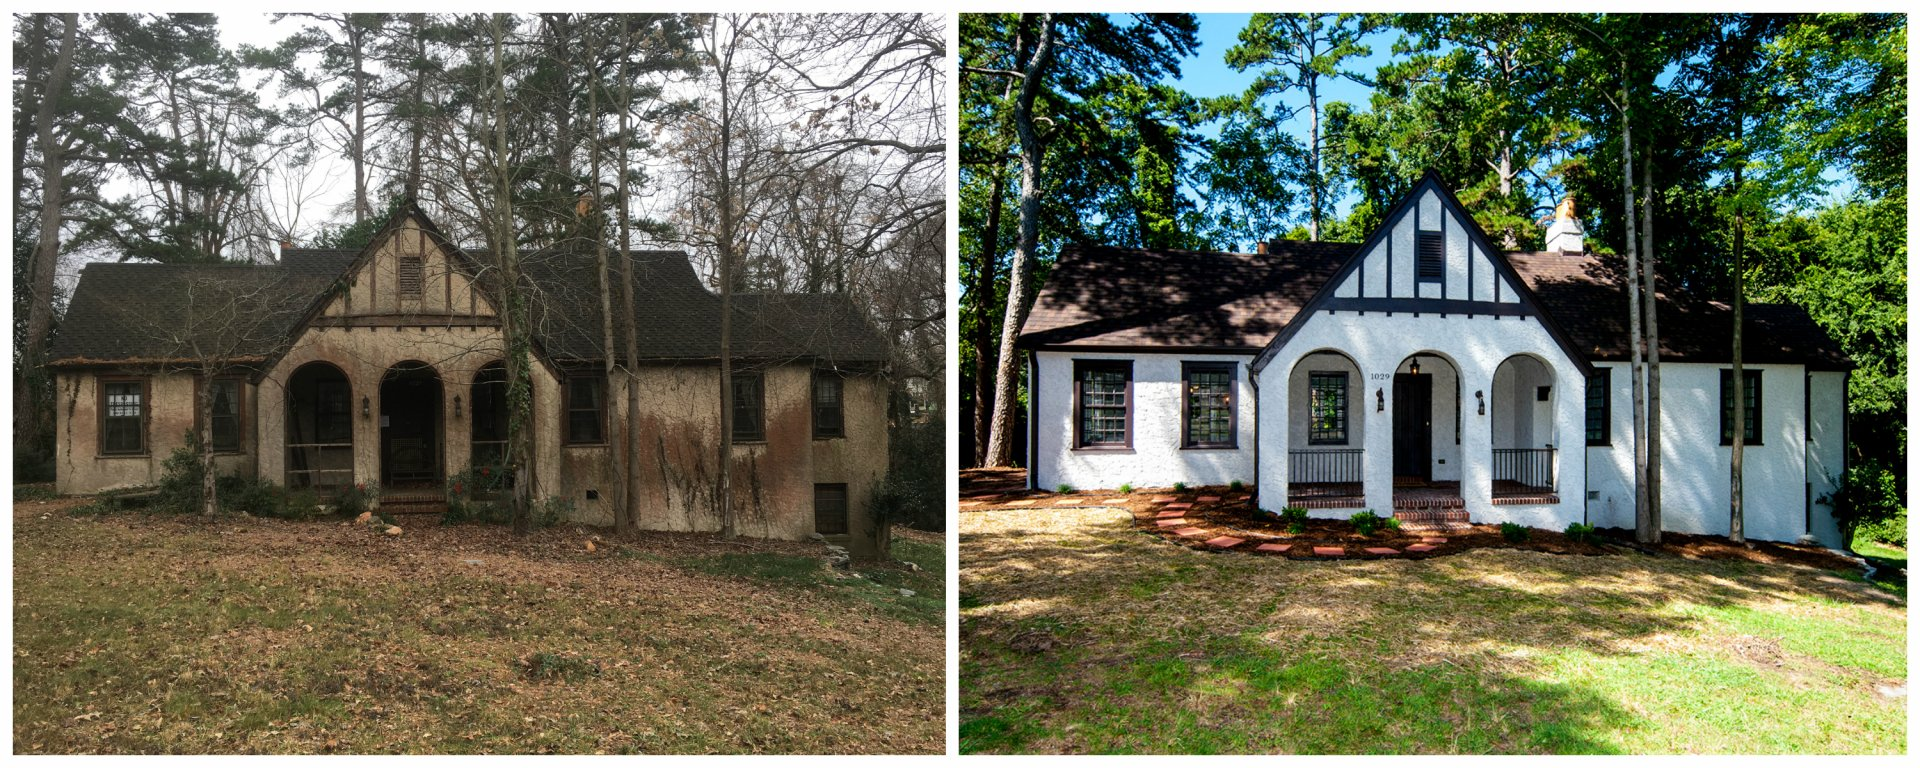 We Buy Ugly Houses - Before and After of an Ugly House